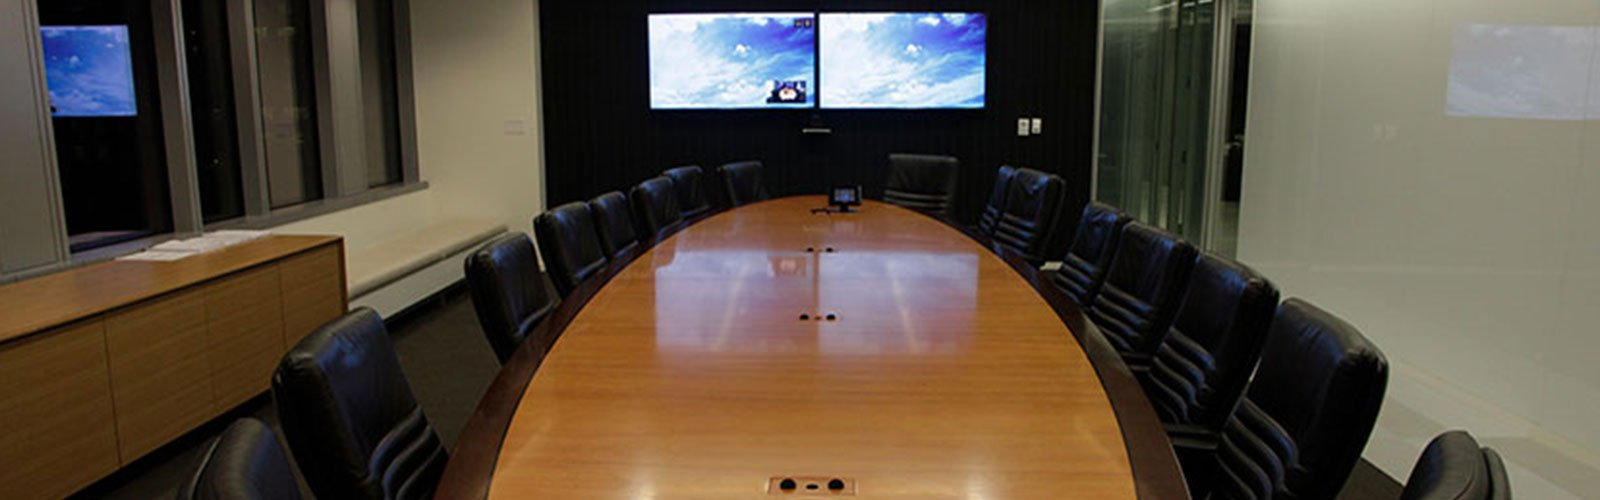 Conference room with video displays and long table (background)